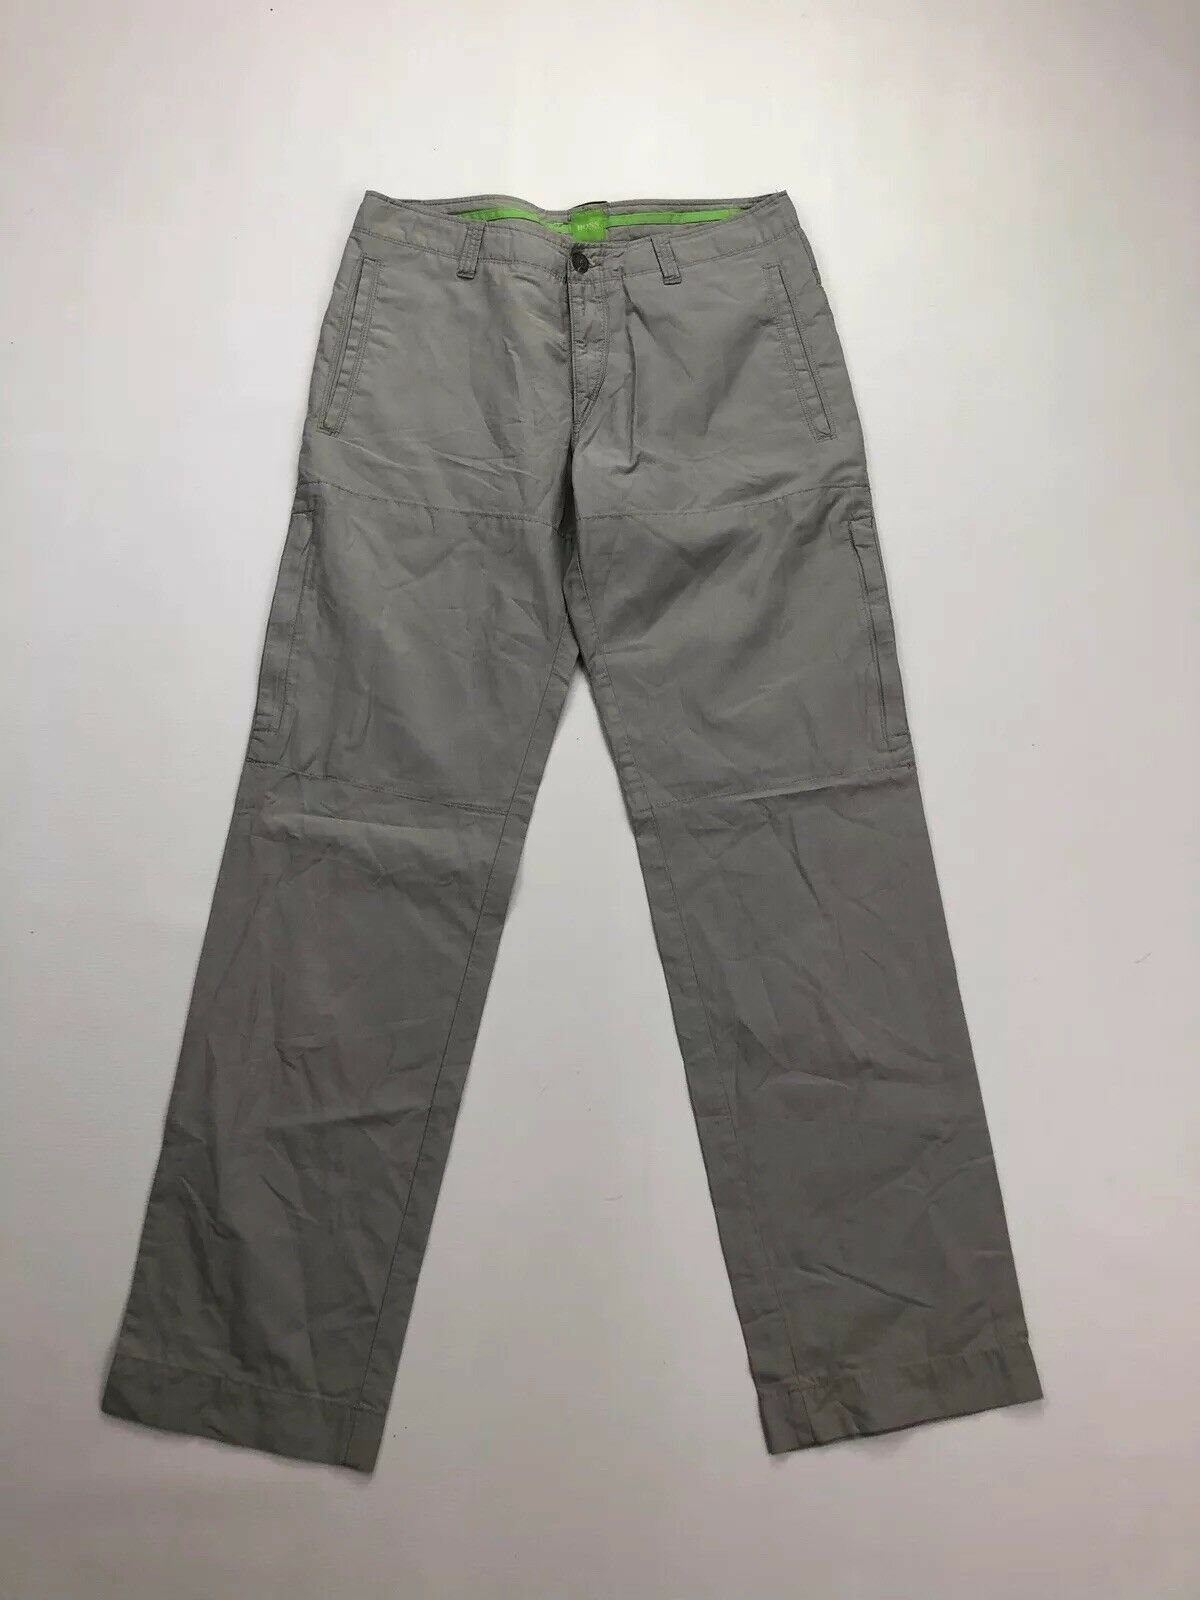 HUGO BOSS Trousers - W30 L32 - Grey - Great Condition - Men's